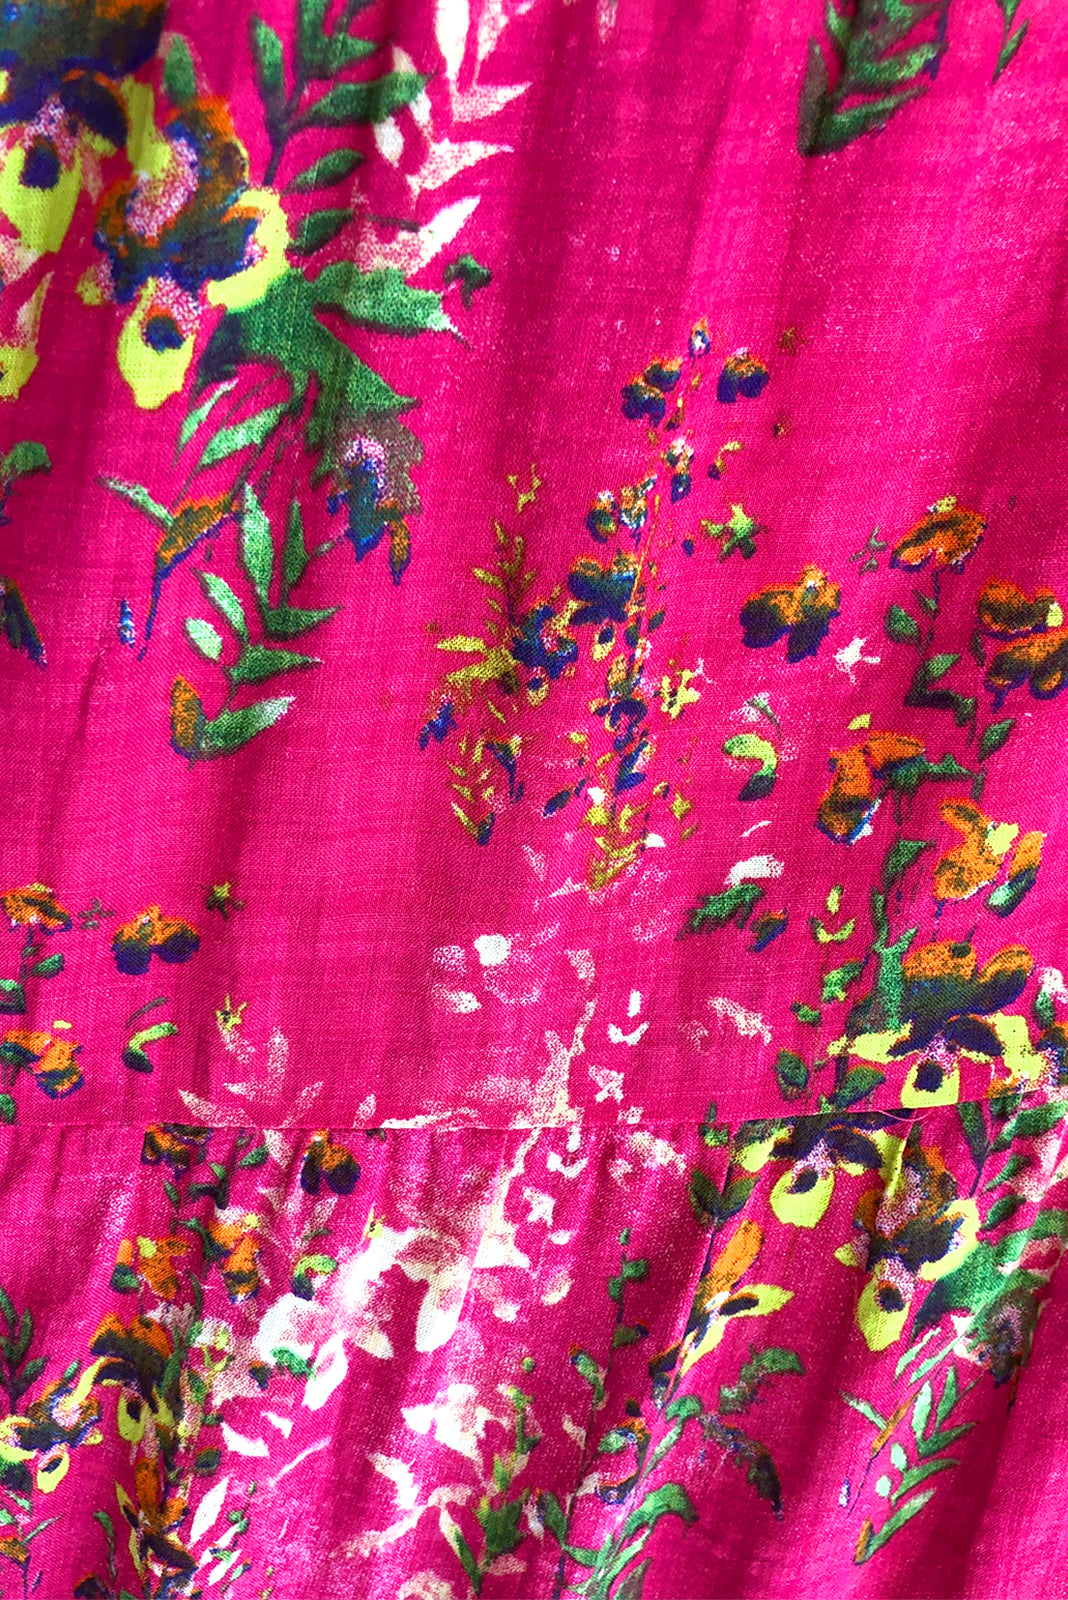 Fabric swatch of Cloudland Pink Party Maxi Dress featuring 50%rayon, 50% cotton fabric in watermelon pink with floral watercolour print.